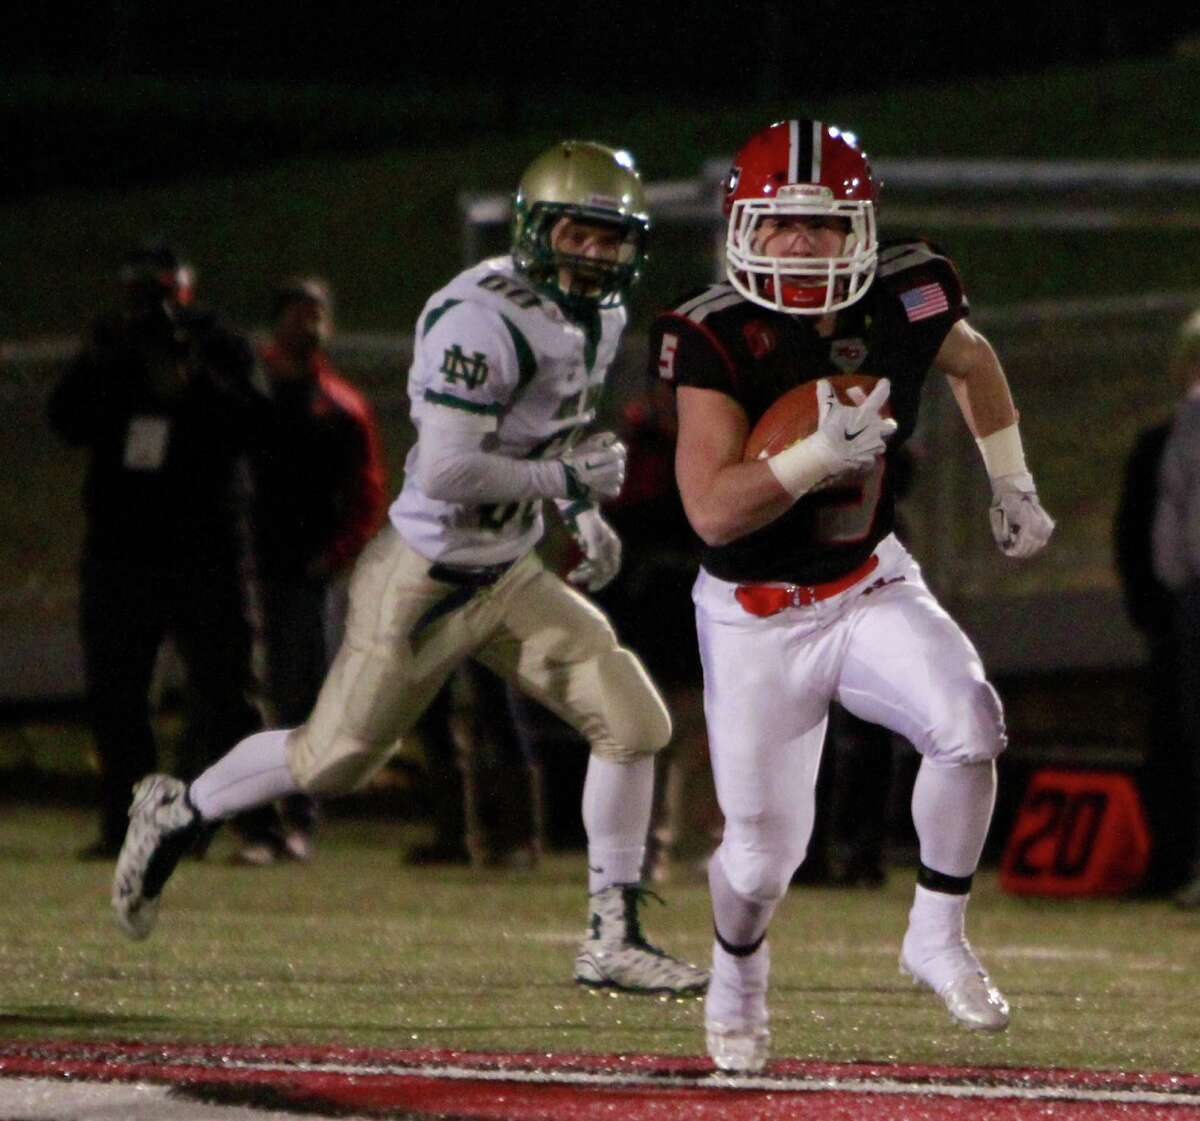 New Canaan's Matt Cognetta runs an 83 yard kickoff return for a touchdown against Notre Dame West Haven during the FCIAC Class L semi-final championship football game in New Canaan on Dec. 7, 2015. New Canaan won 51-27.